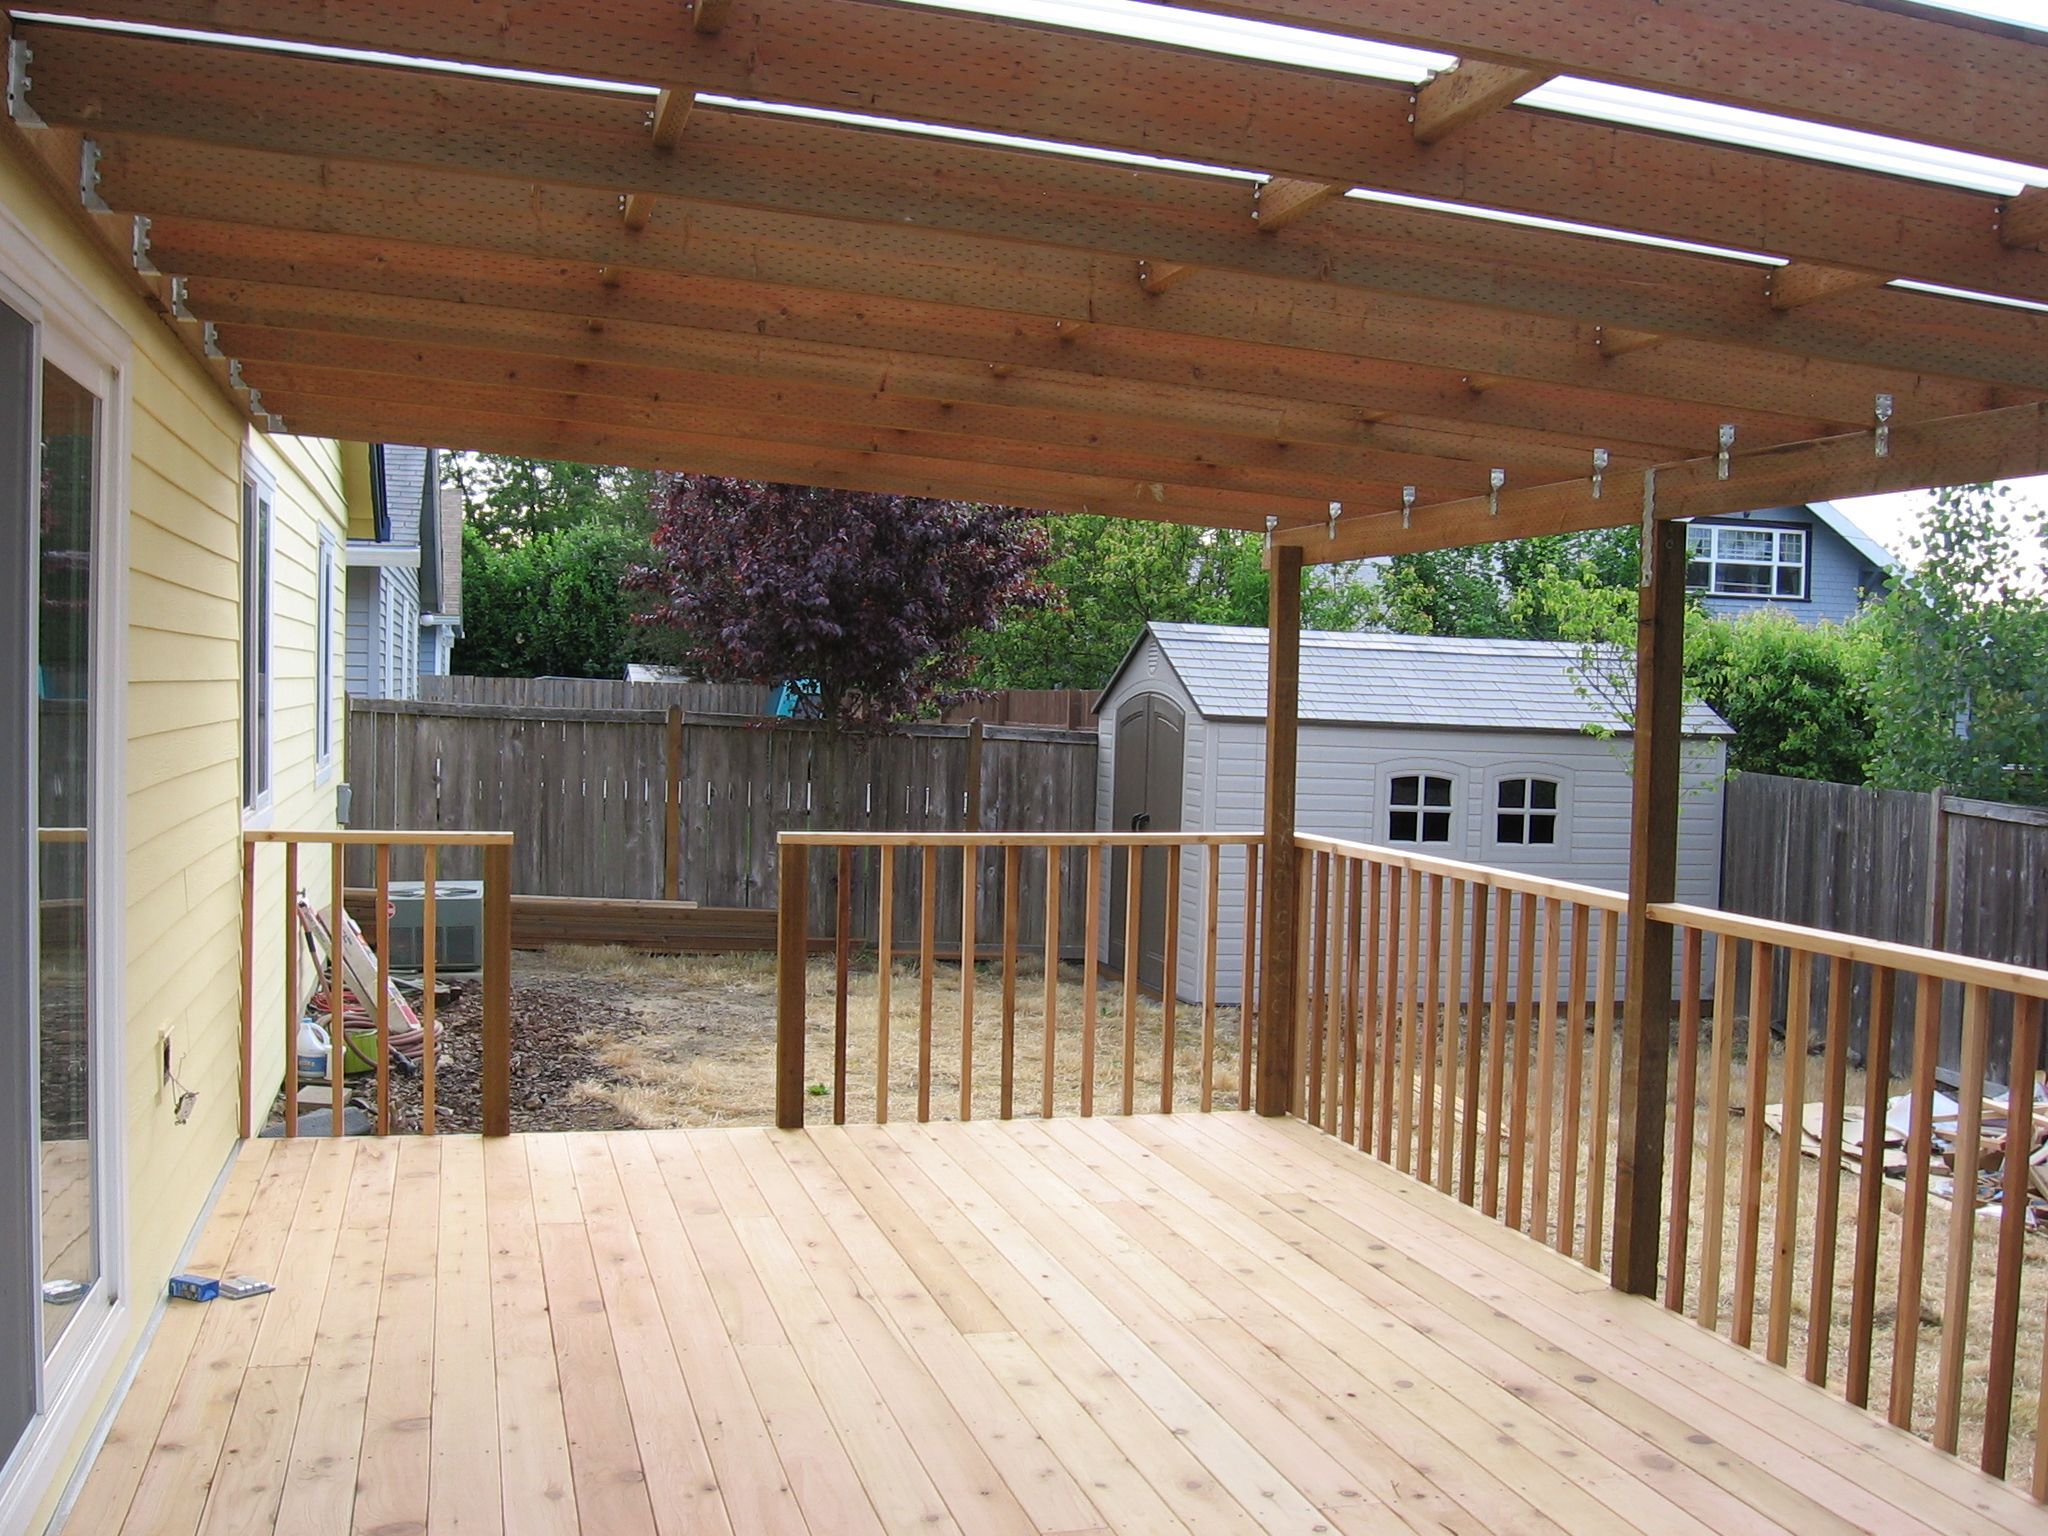 cover an existing deck this deck and cover was flashed on steps in discovering the right covered deck ideas id=36398